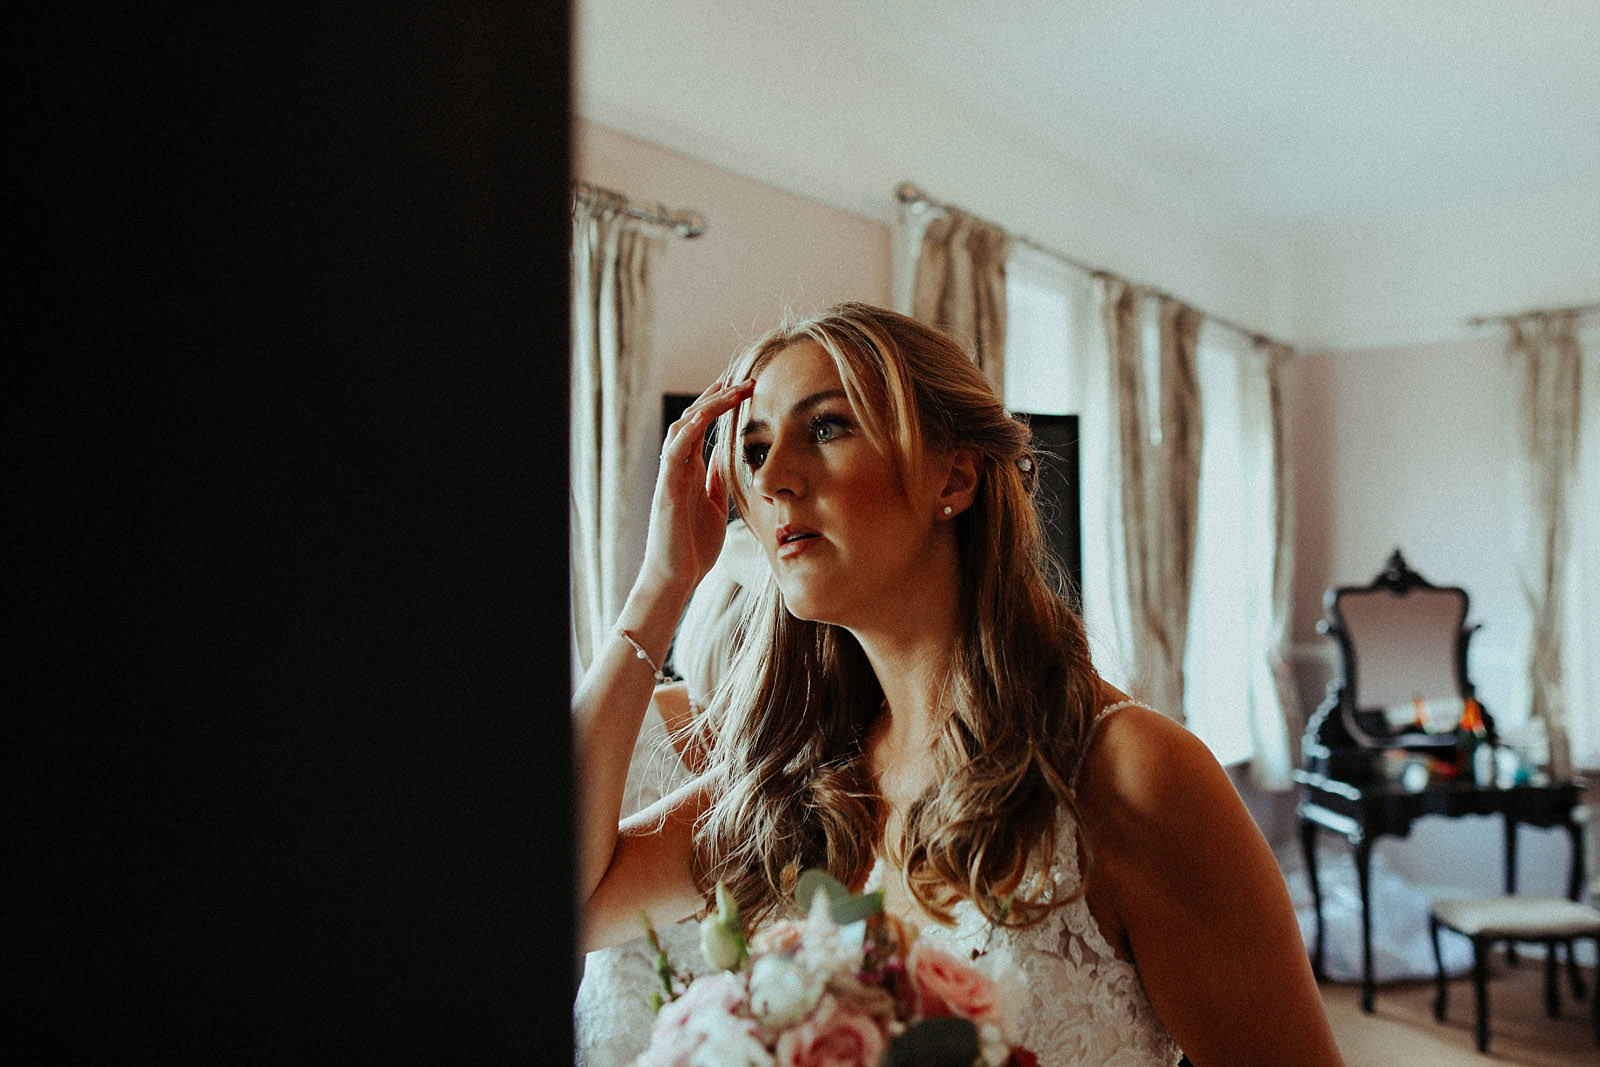 bride checking herself in a mirror